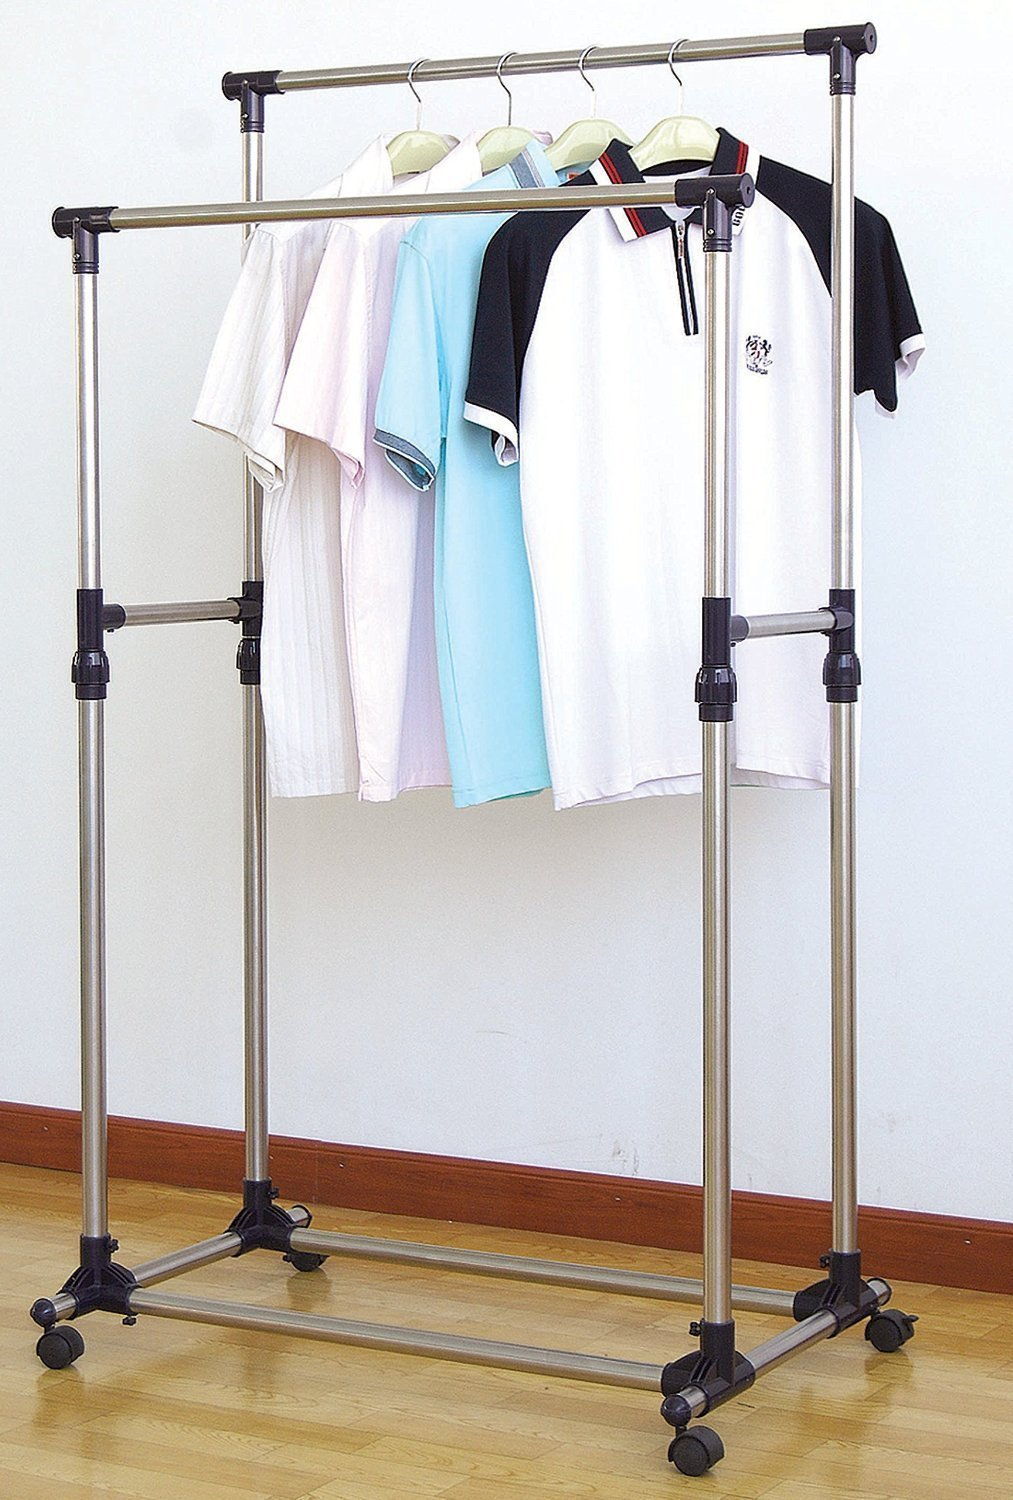 Double Pole Stainless Steel Multi Function Clothes Hanger And Organizer Rack With Wheels